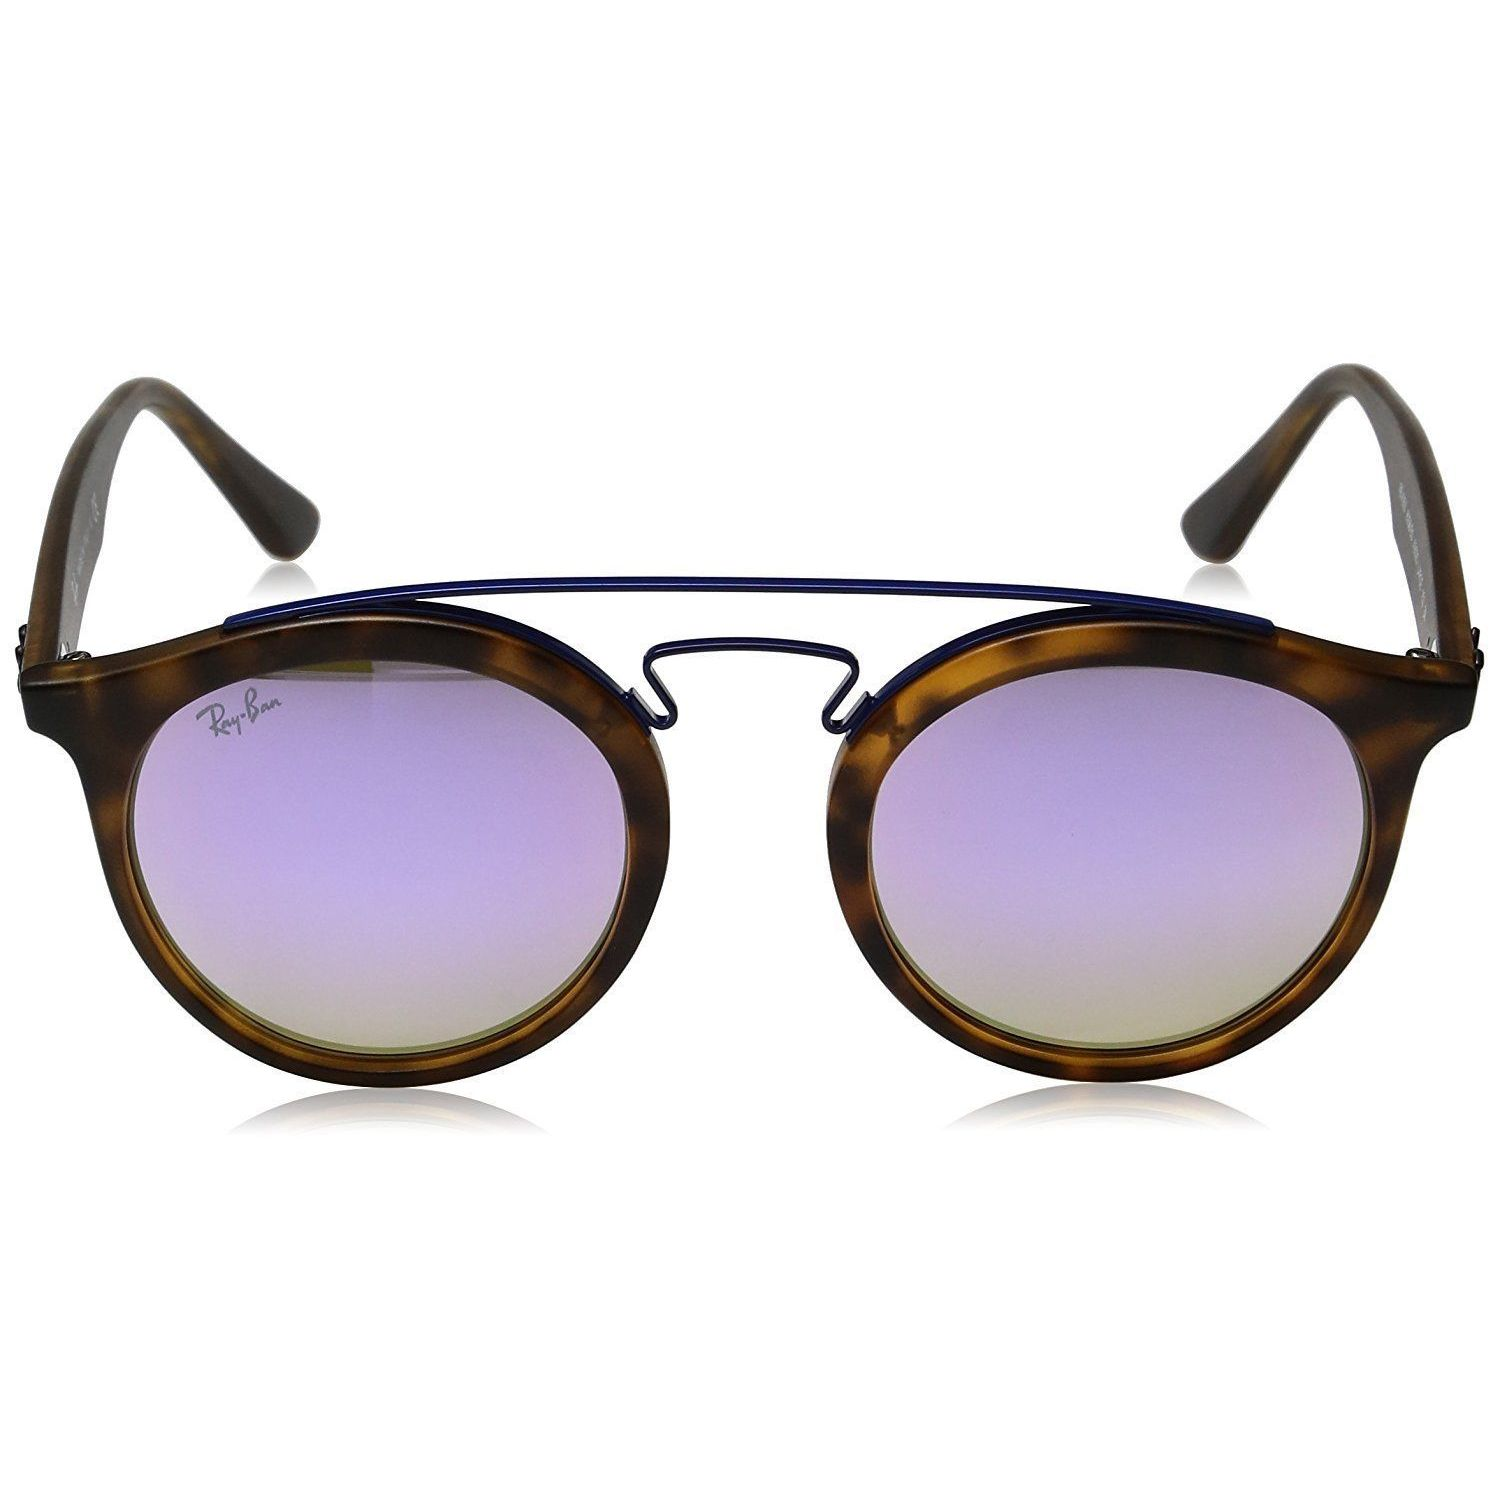 cace3e9a5c Shop Ray-Ban Gatsby I RB4256 Unisex Tortoise Frame Lilac Gradient Mirror  Lens Sunglasses - Free Shipping Today - Overstock - 15371453